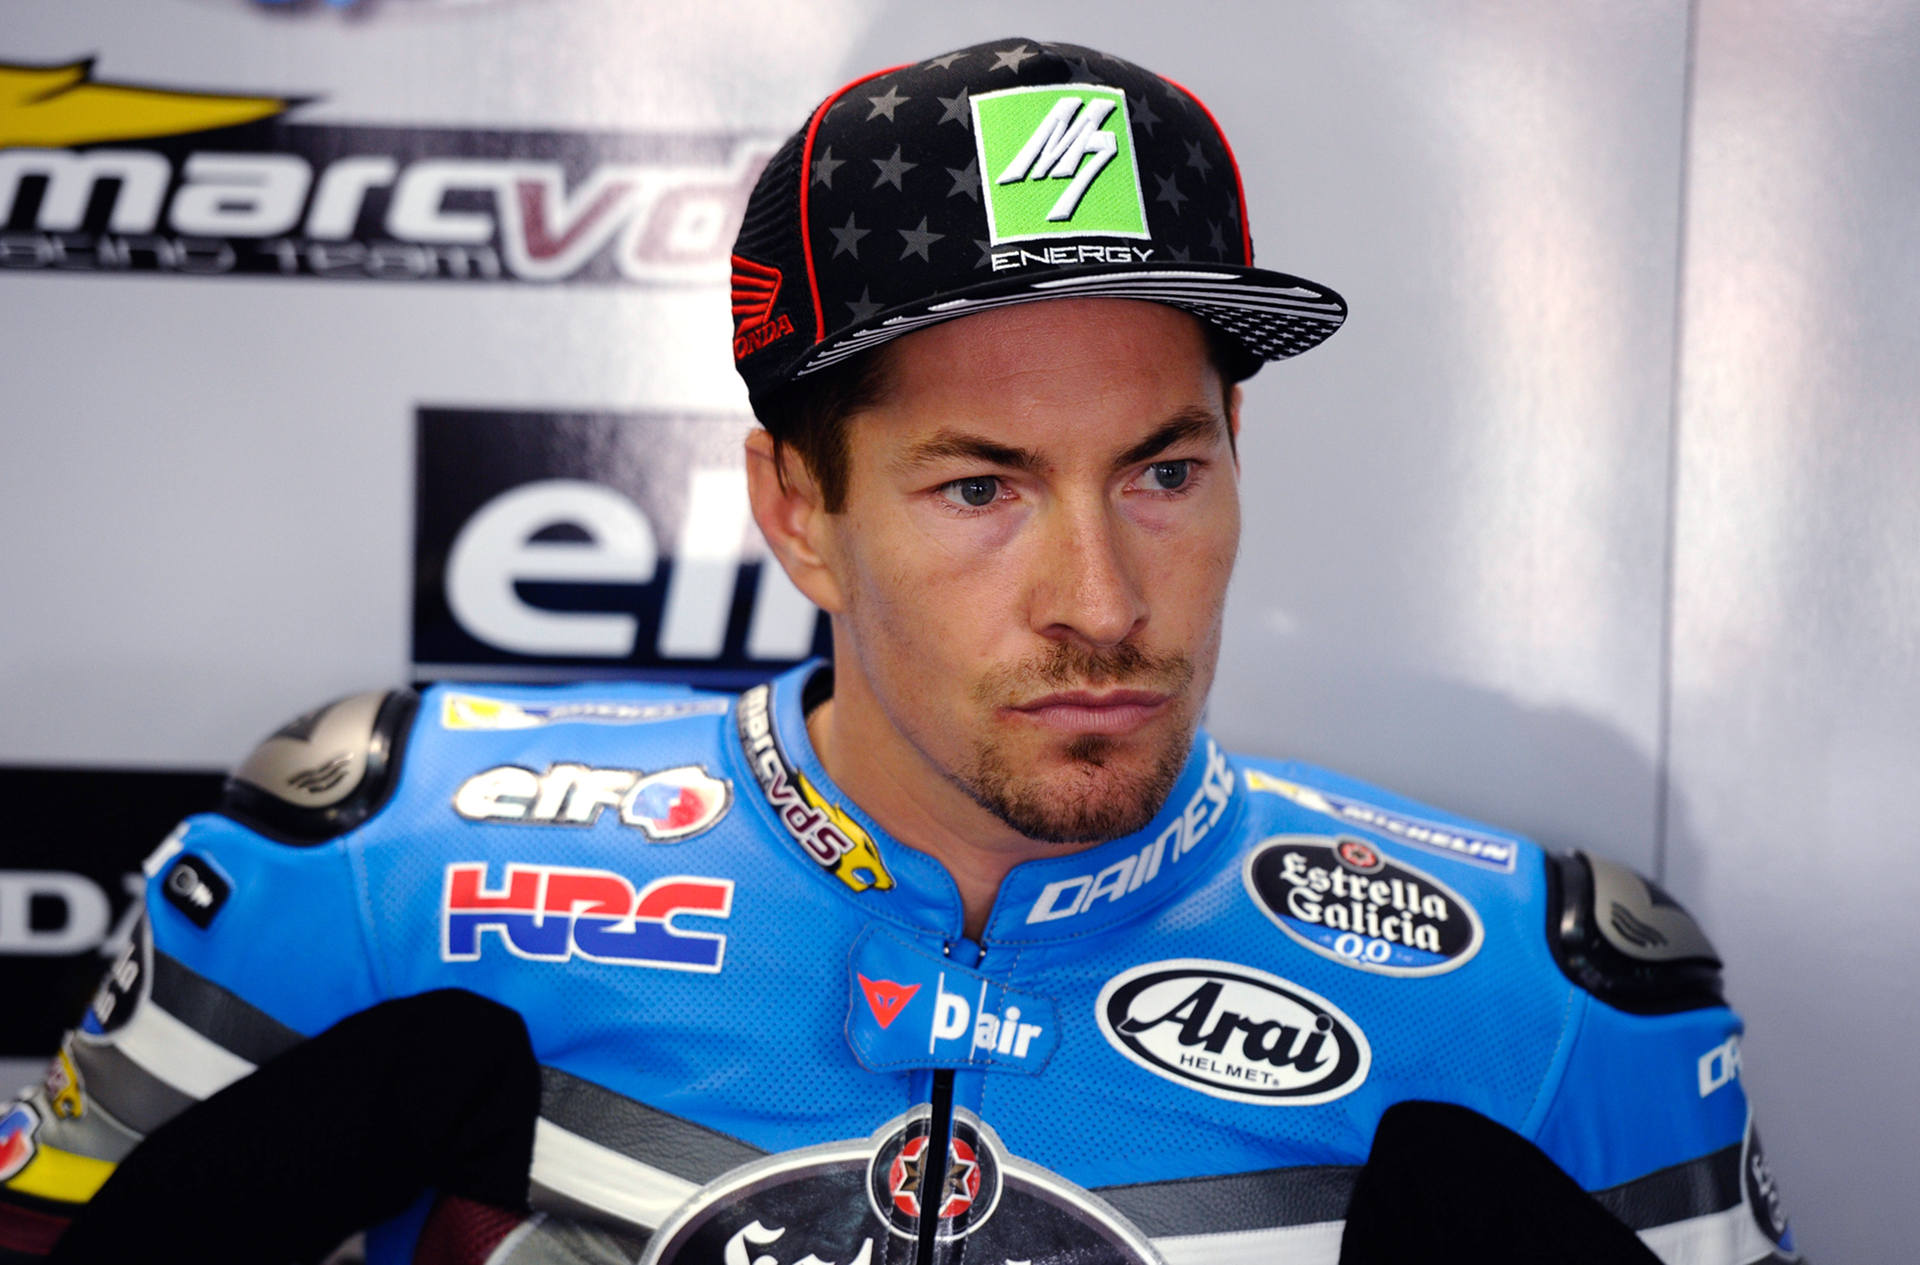 Nicky Hayden S Aragon Motogp Guest Ride Off To Slow Start Motorcycledaily Com Motorcycle News Editorials Product Reviews And Bike Reviews